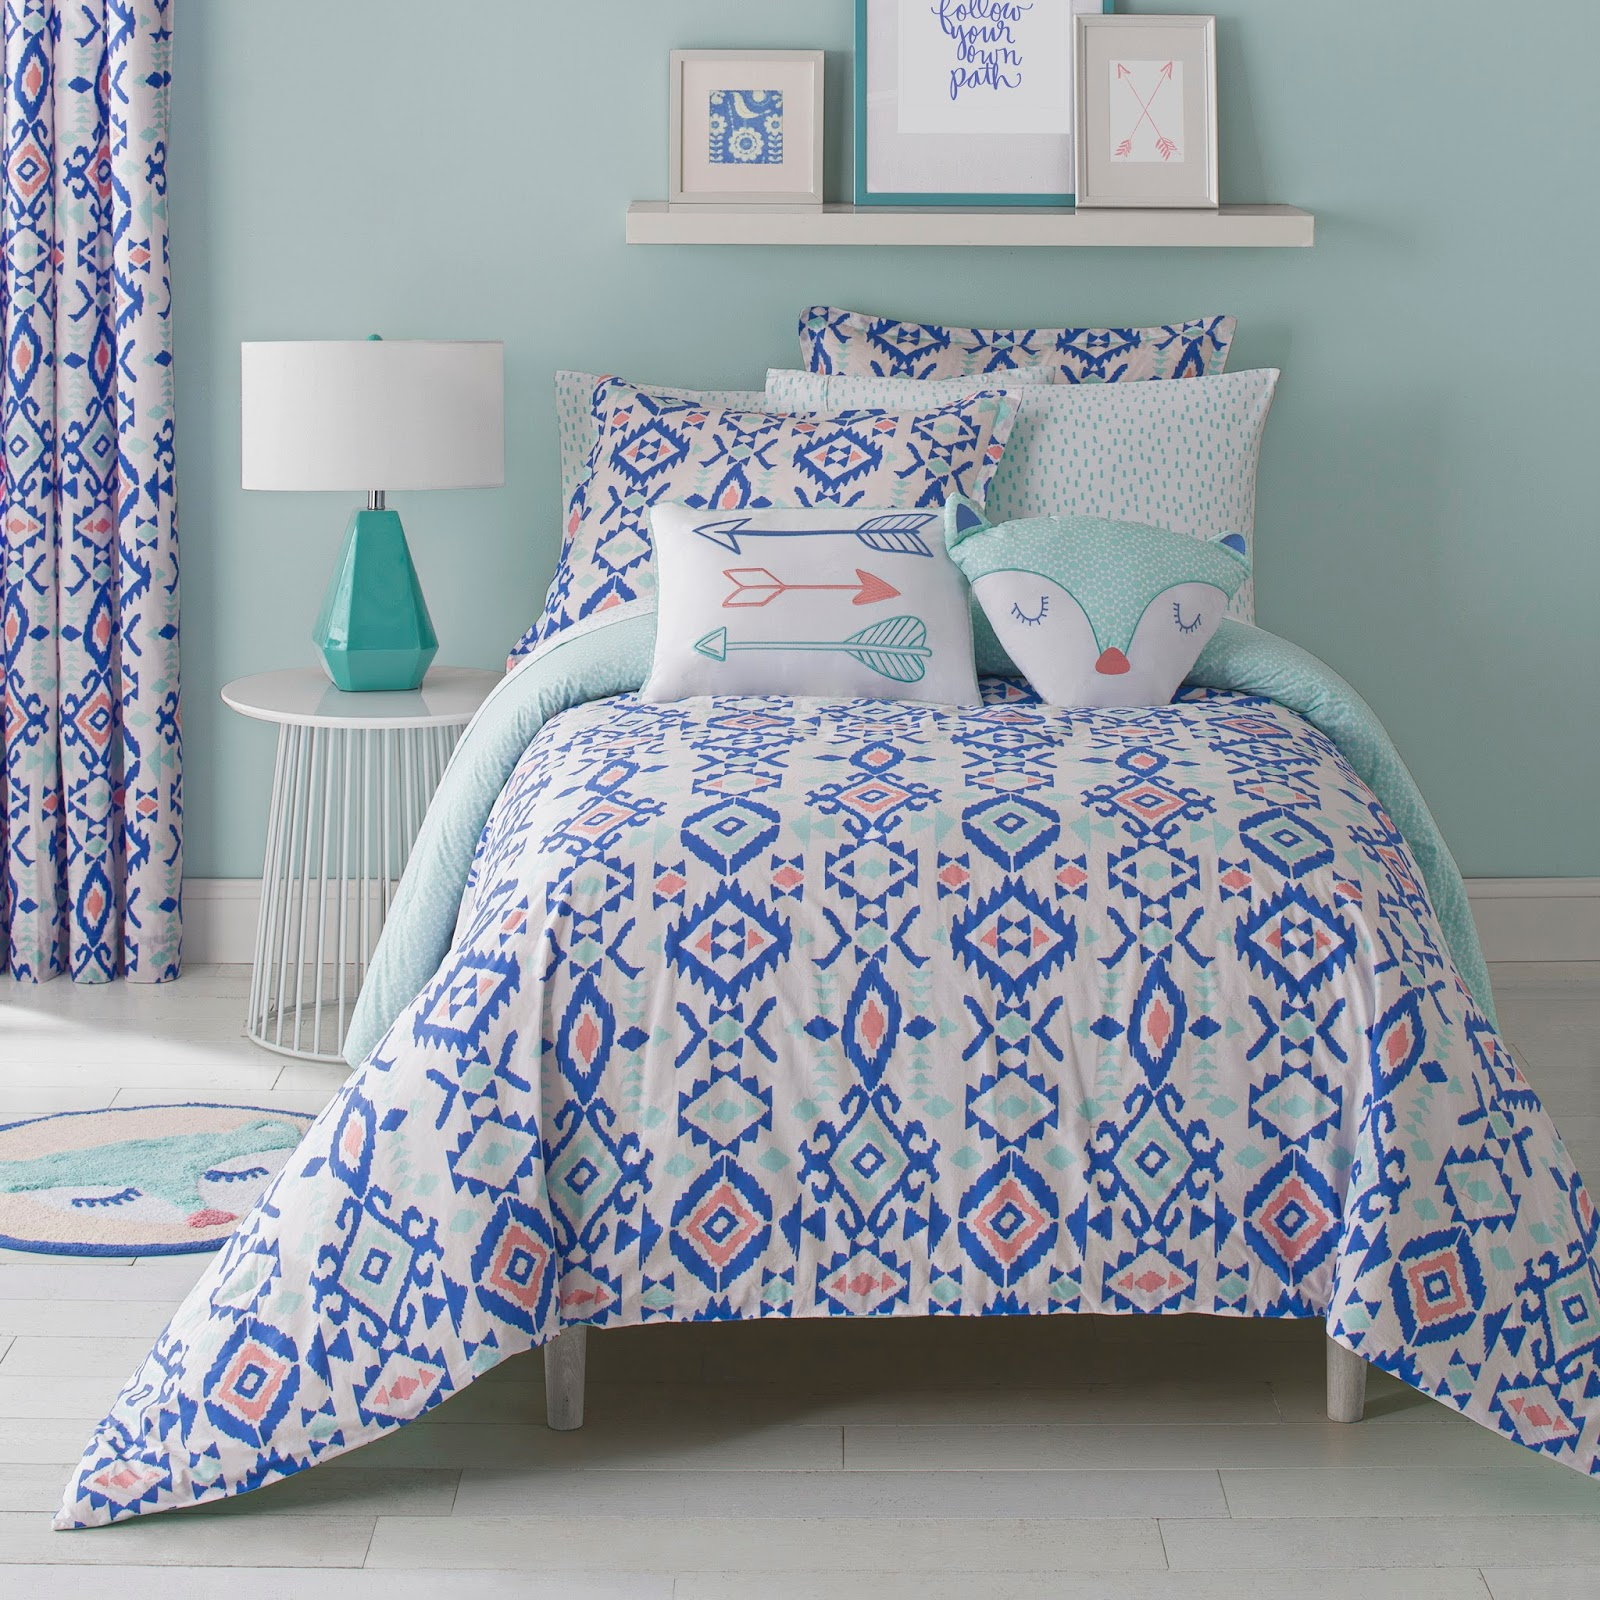 Travel Themed Bedroom For Seasoned Explorers: Sabrina Soto Children's Bedding Collection At Target